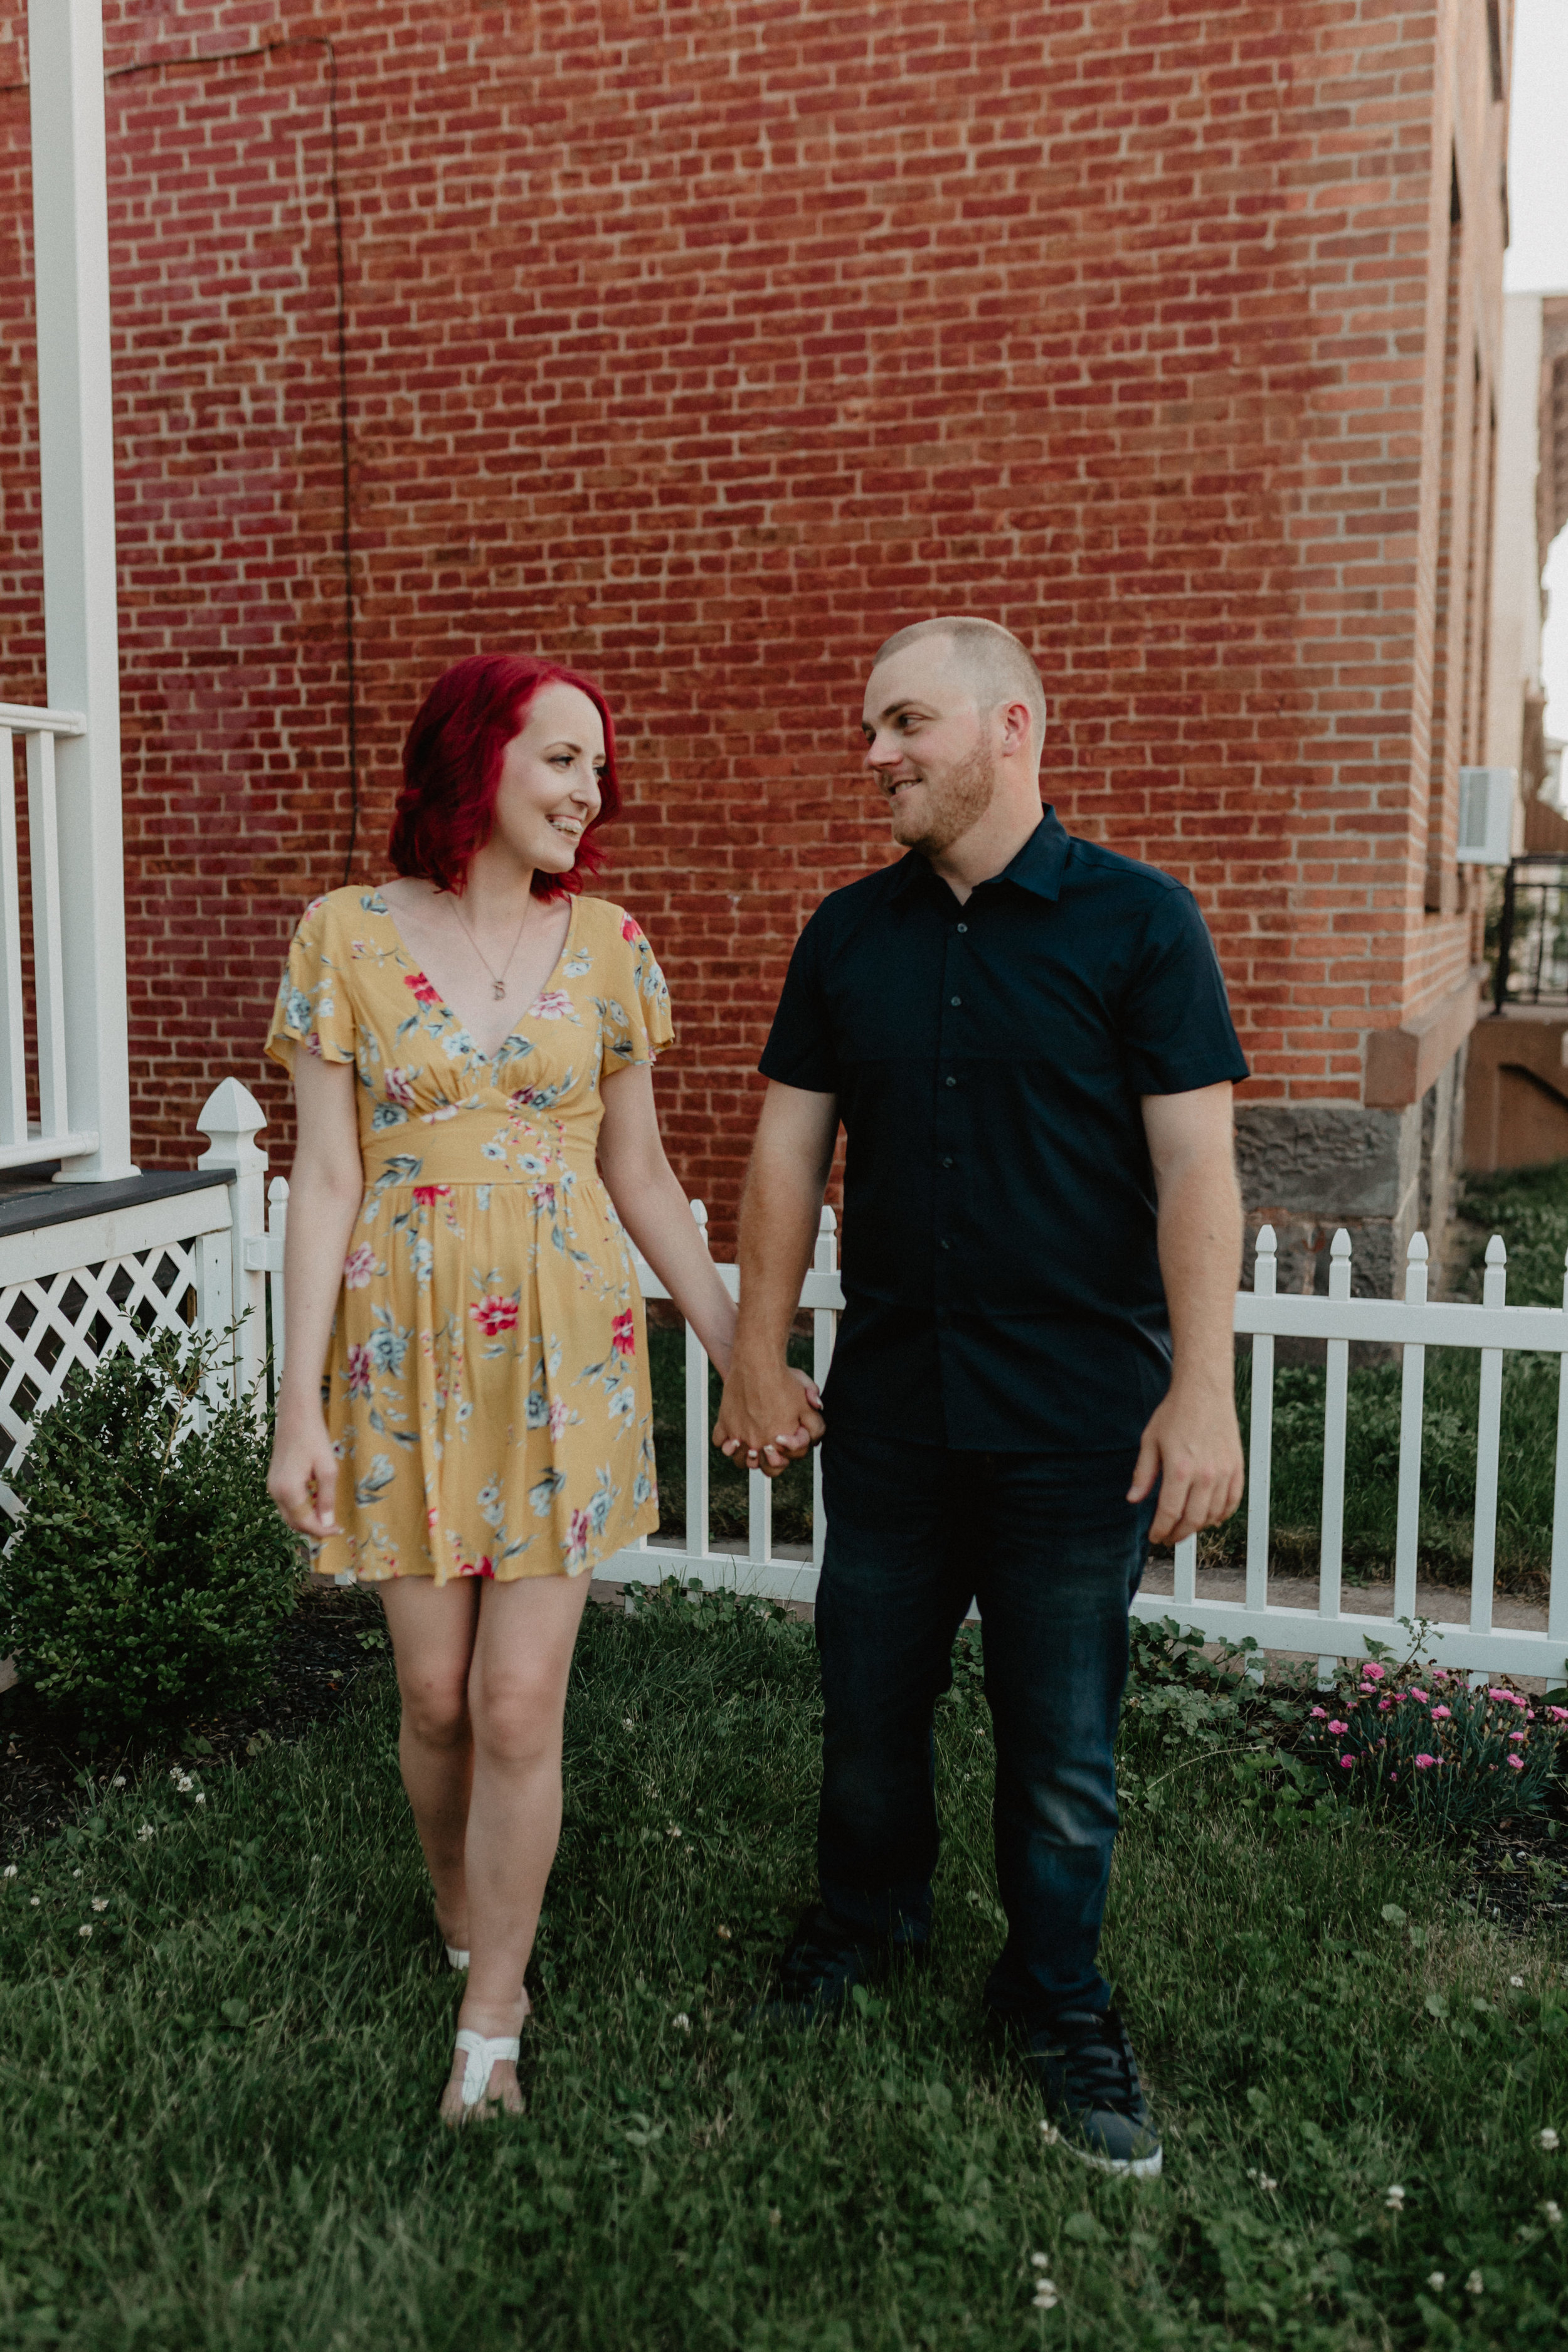 downtown-troy-engagement-session-4.jpg